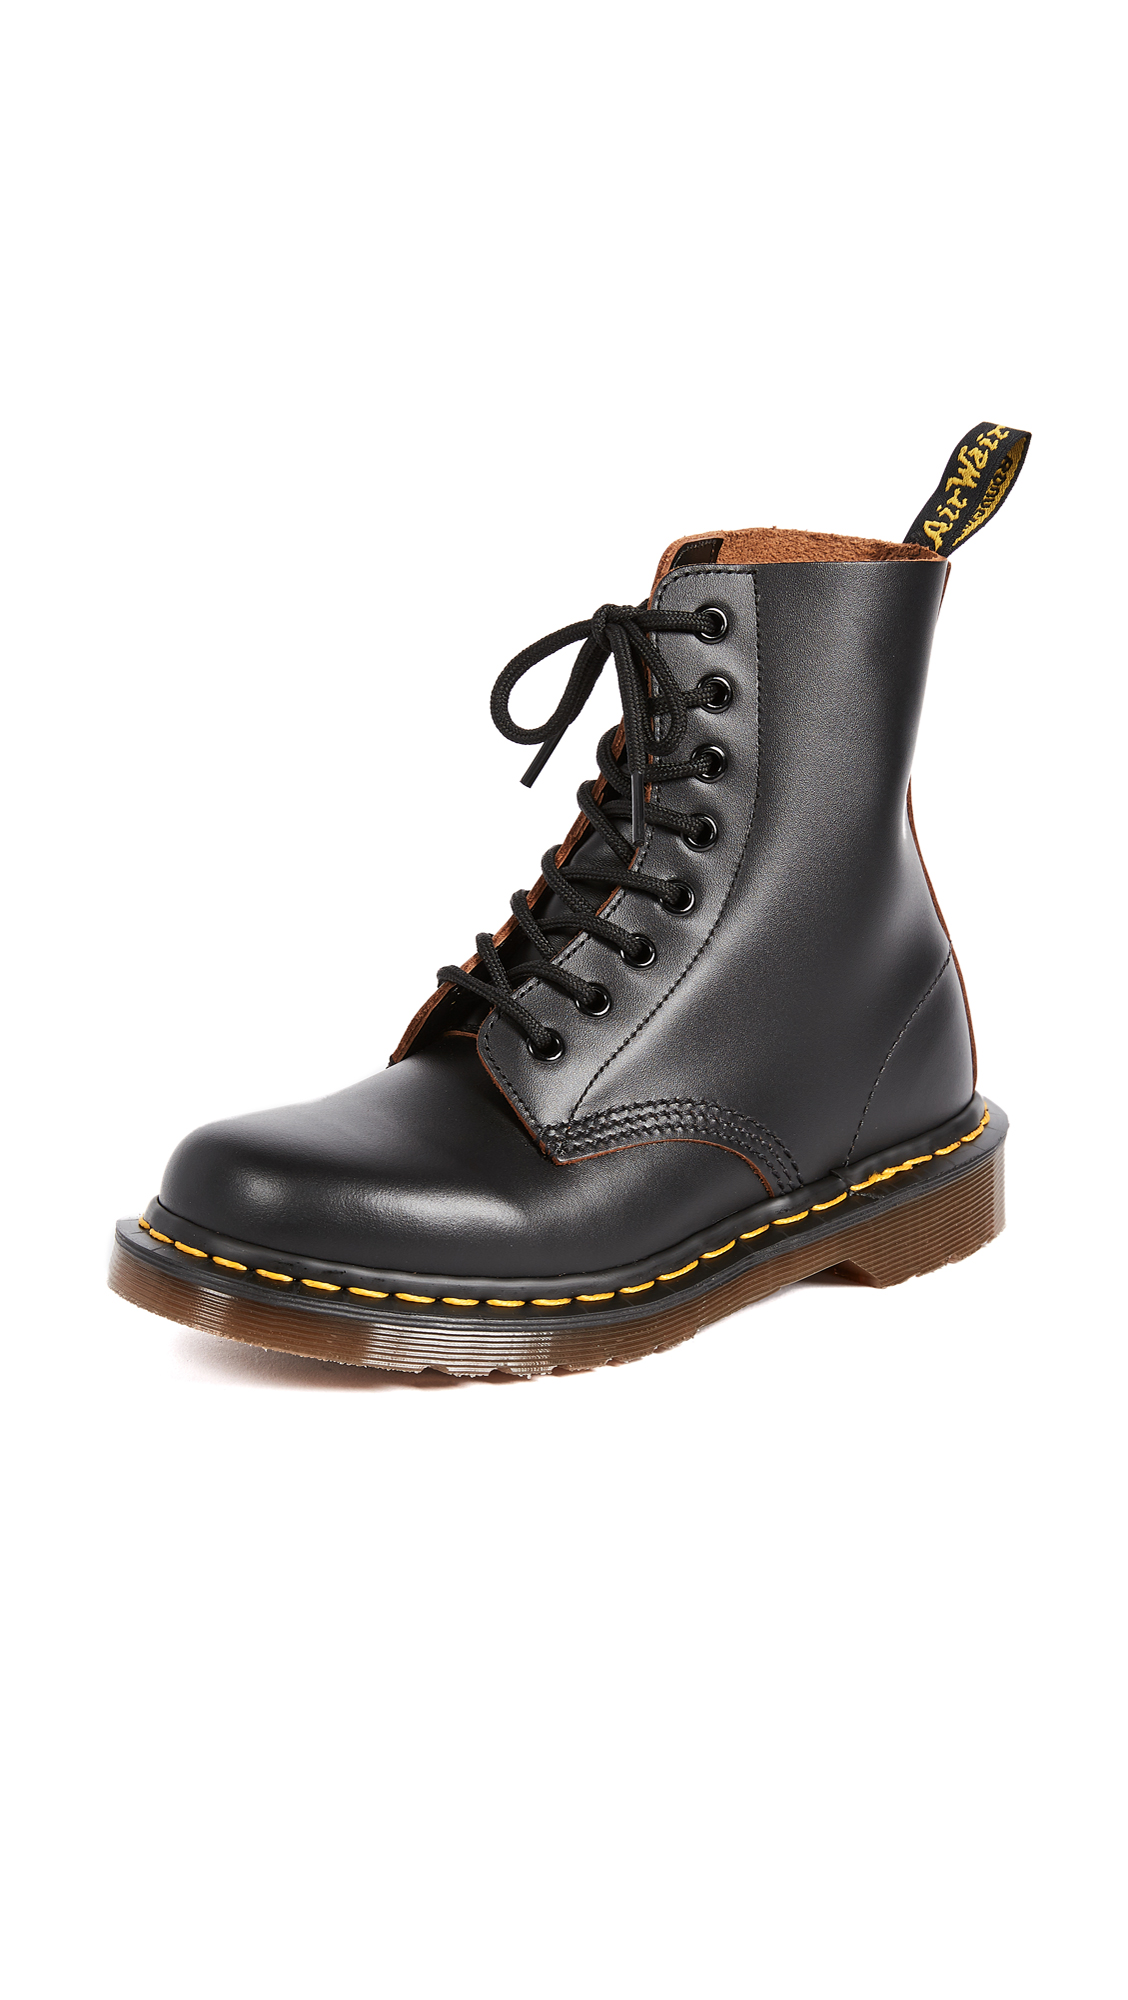 Dr. Martens 1460 8 Eye Boot - Black